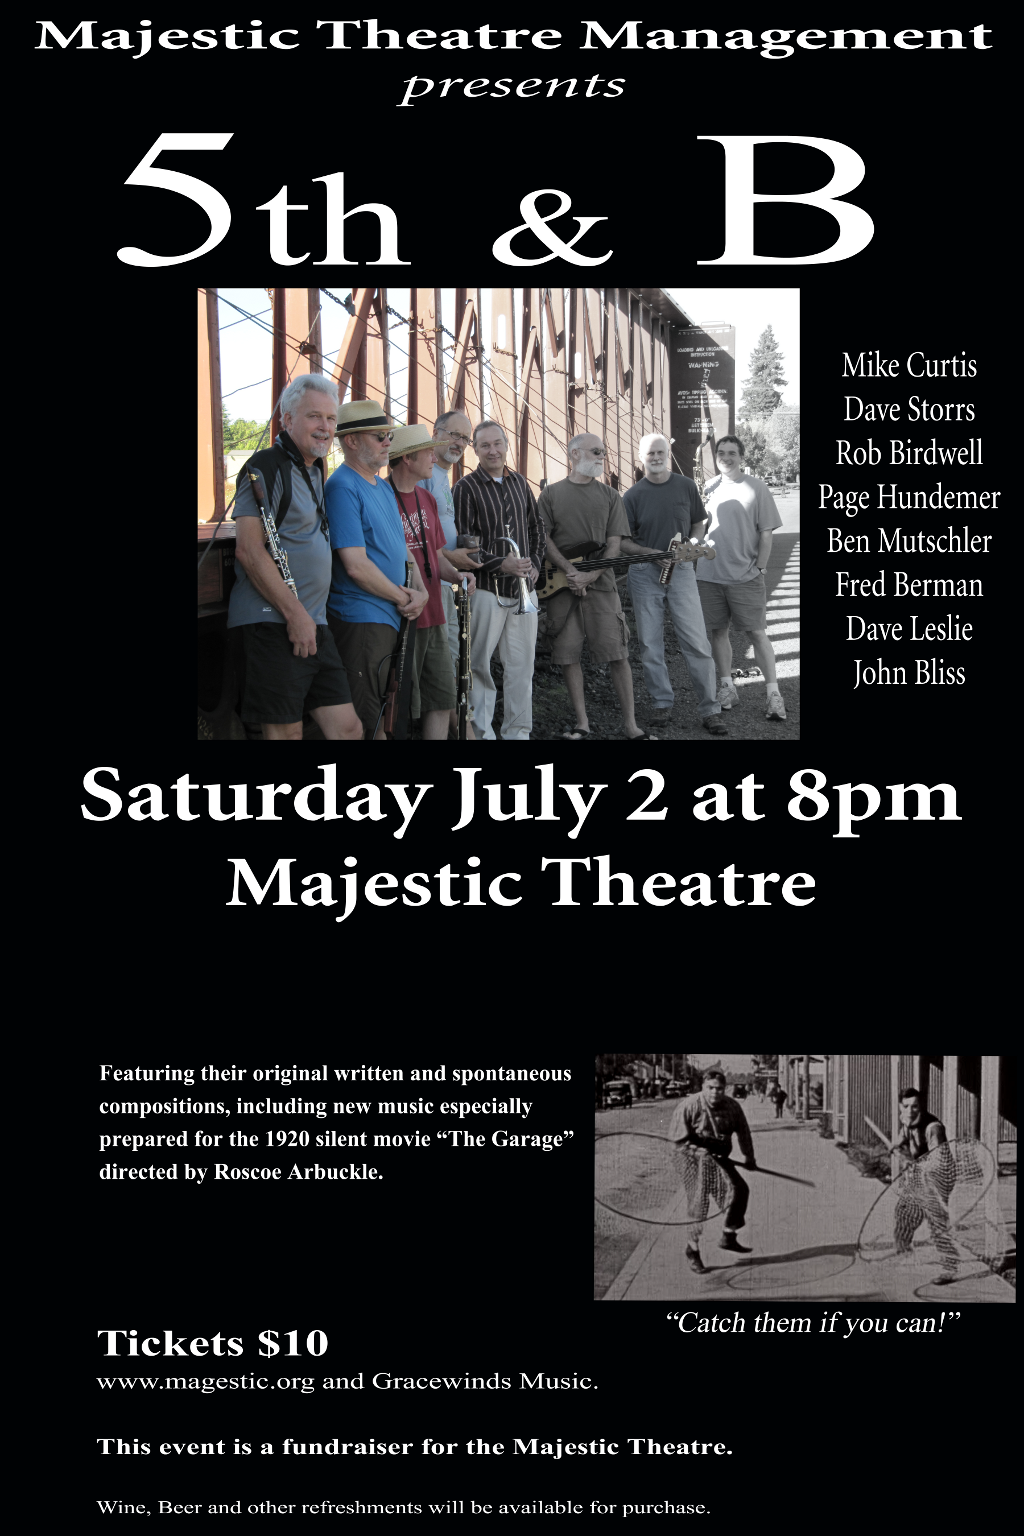 5th & B Play Majestic July 2 2011